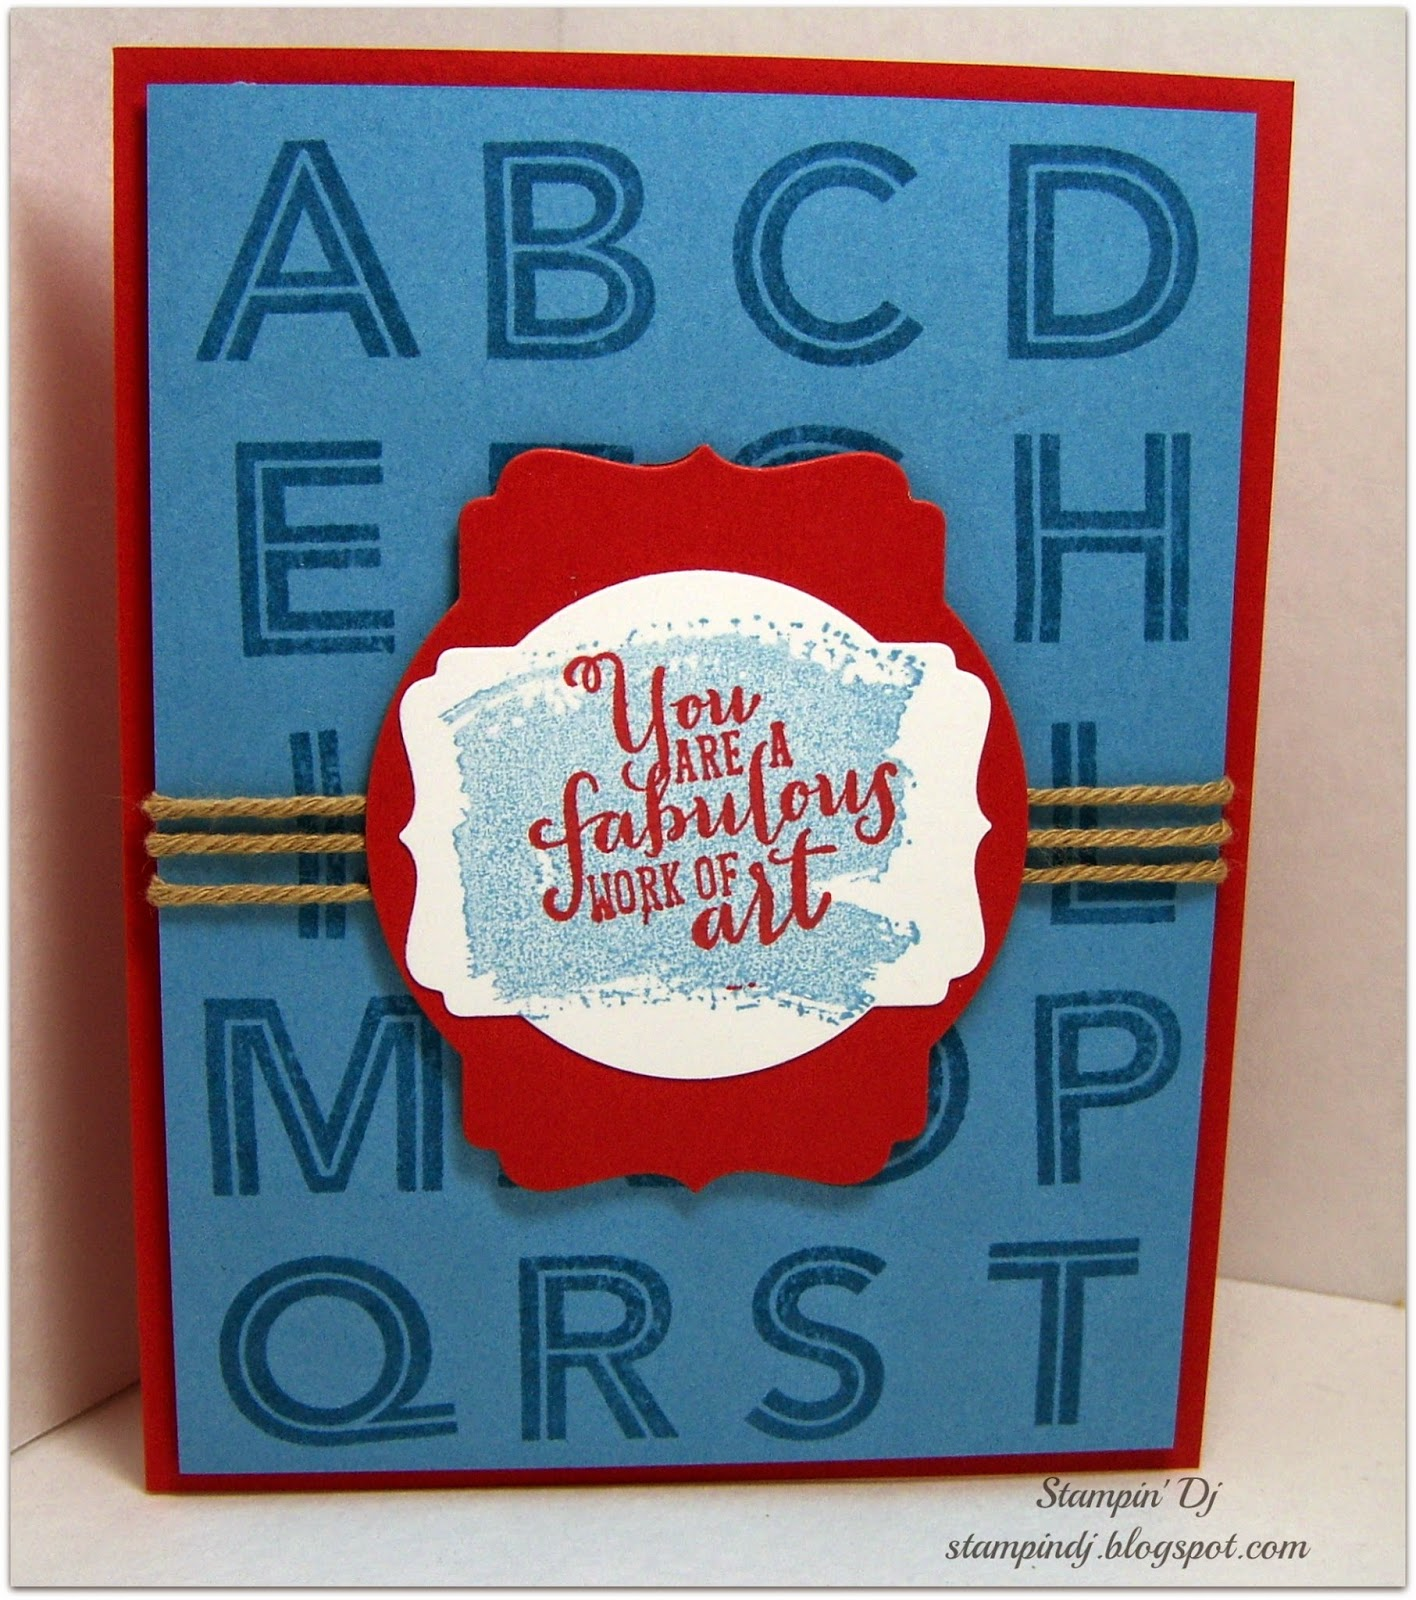 http://stampindj.blogspot.com/2014/06/new-stampin-up-favorites.html